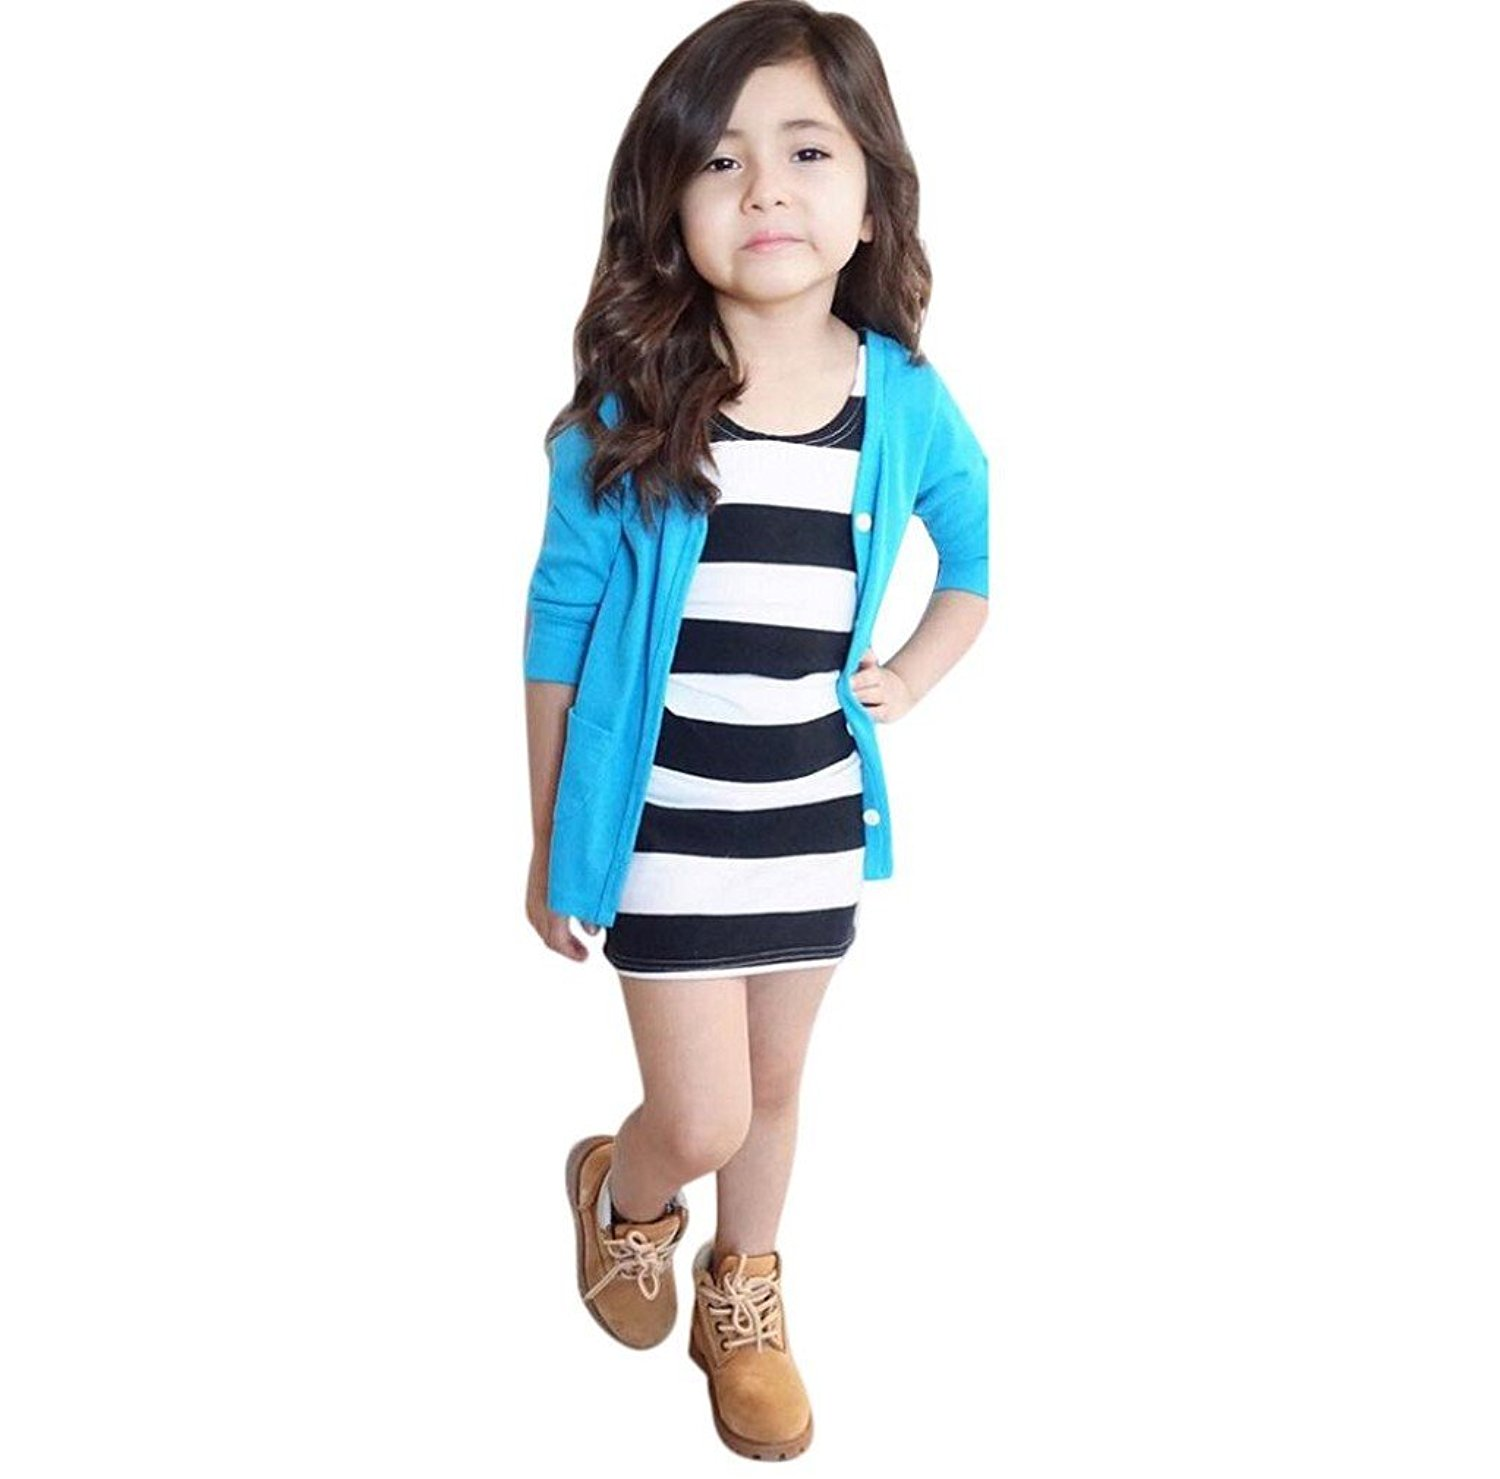 Morecome 1Set Kids Girls Long Sleeve T-Shirt Coat Tops&Dress Clothes Outfits